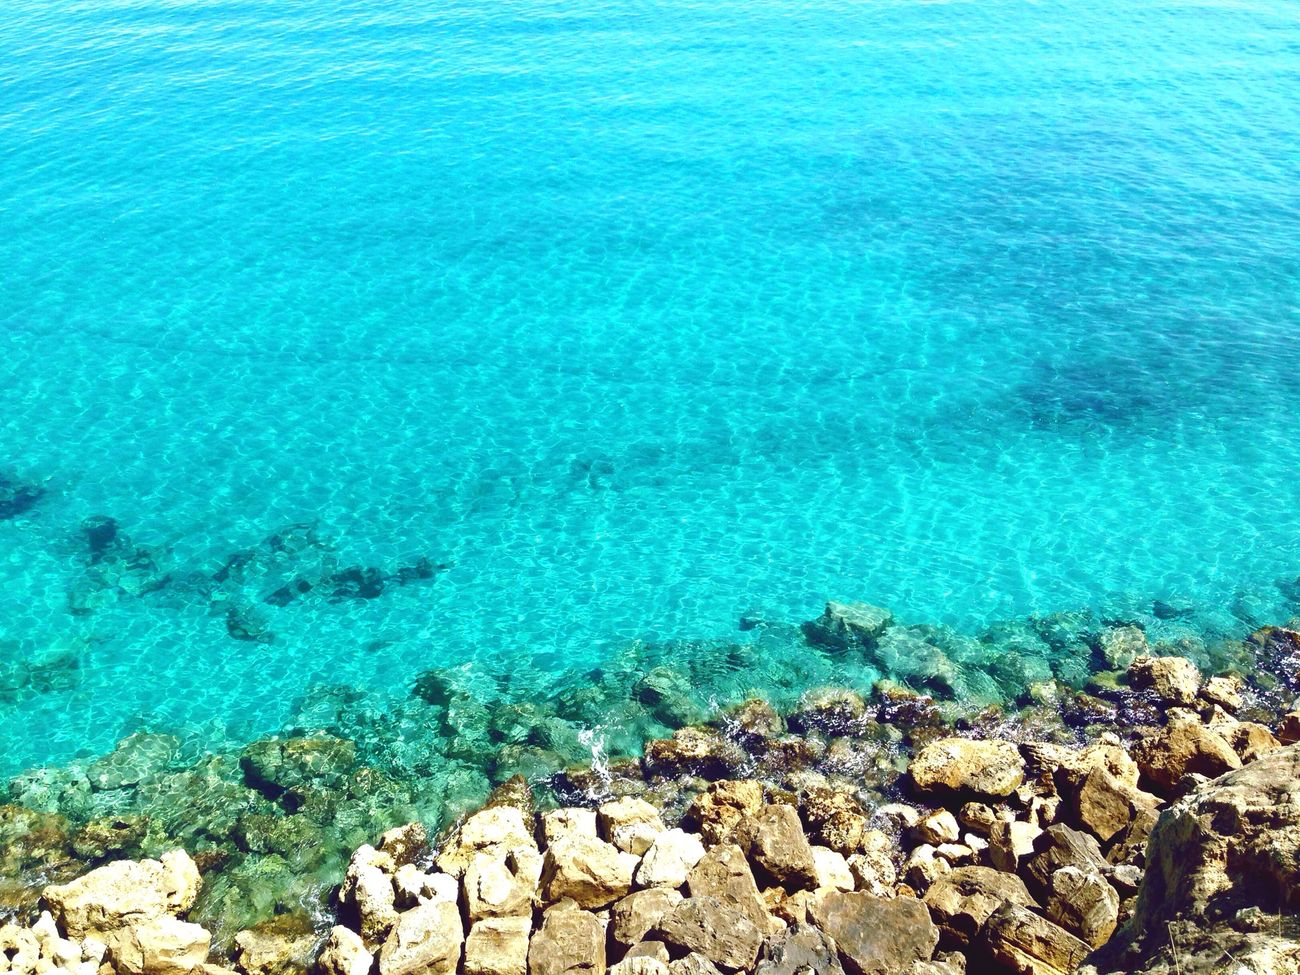 Cristal clear. Beauty Italy Eye4photography  Shore EyeEm Best Shots Picoftheday Feelingblue Peace ✌ Follow Me On Instagram